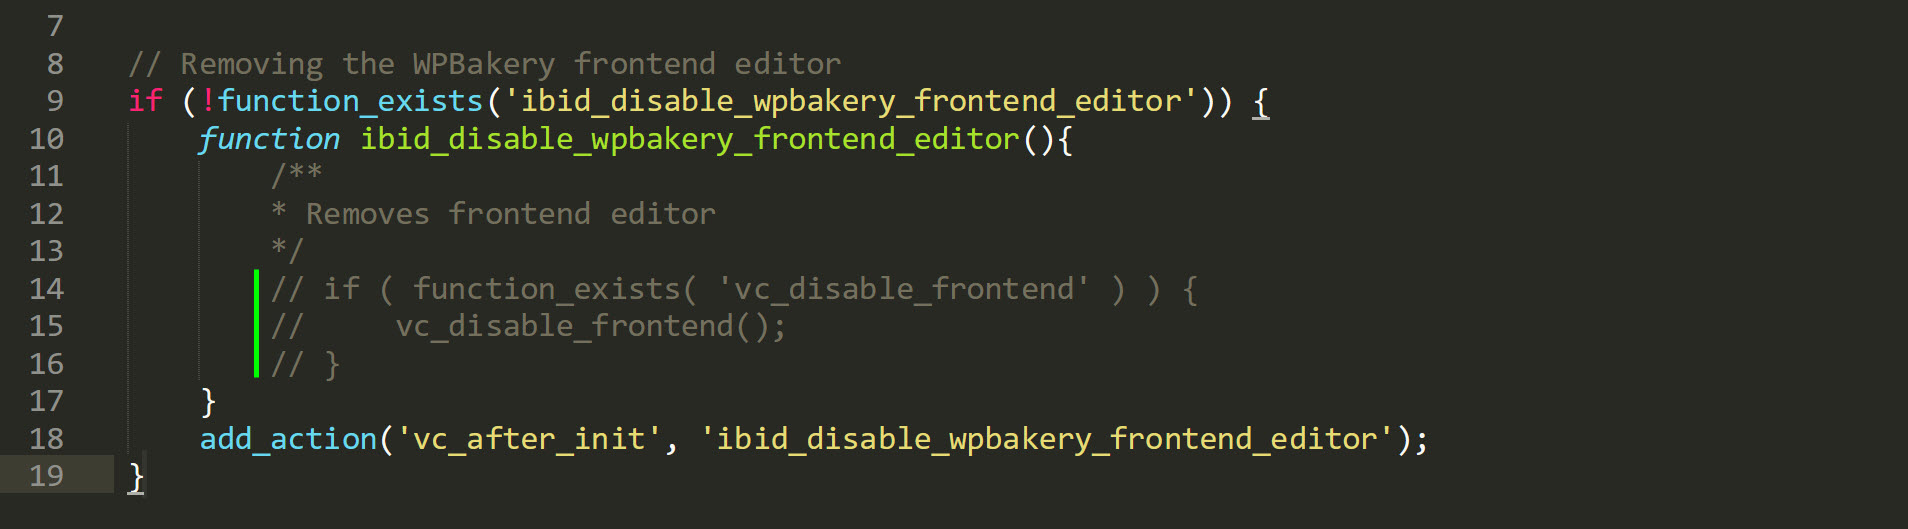 WPBakery Frontend Editor